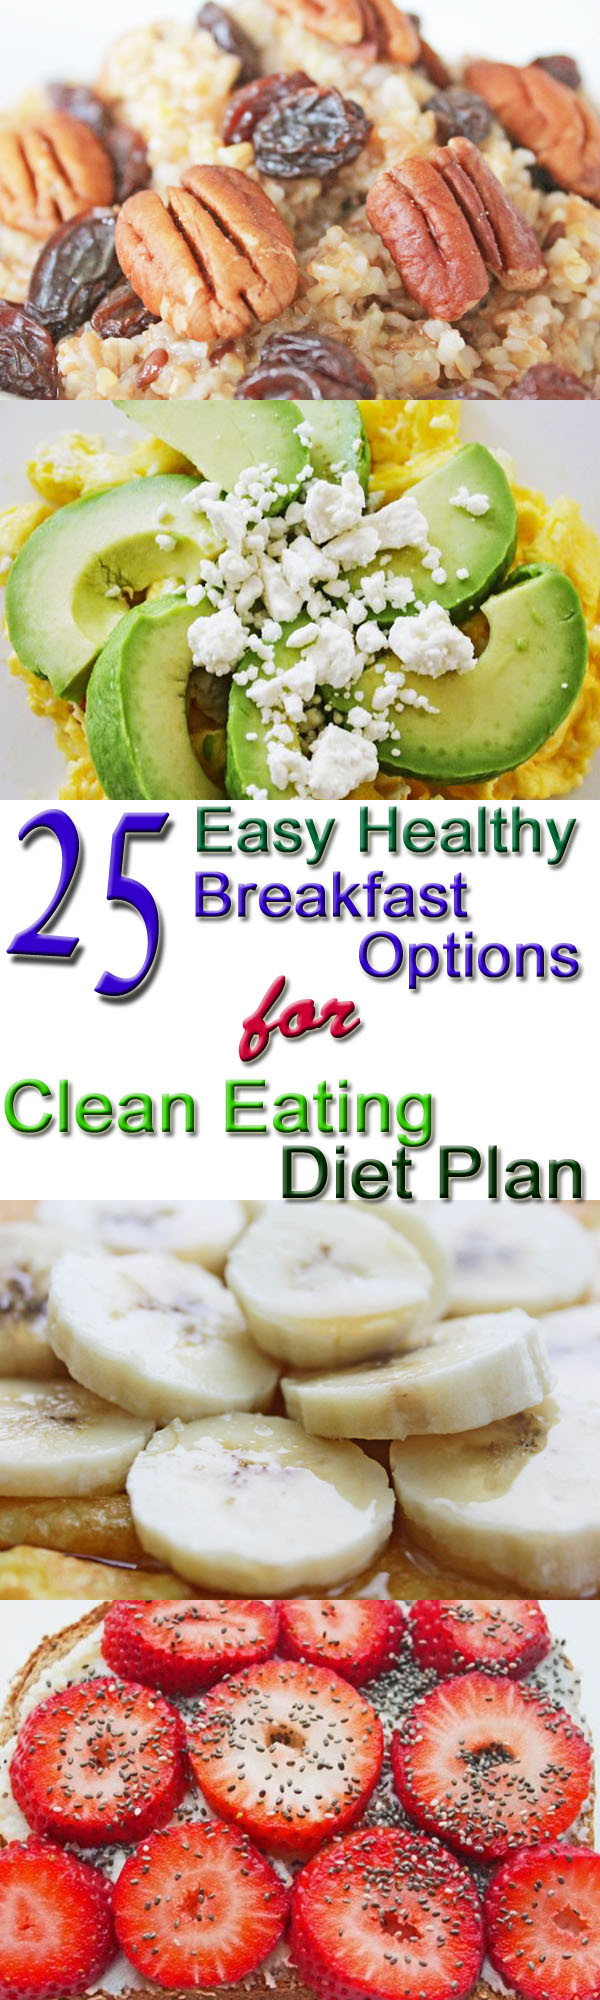 Healthy Clean Eating Recipes  25 Healthy Breakfast Options